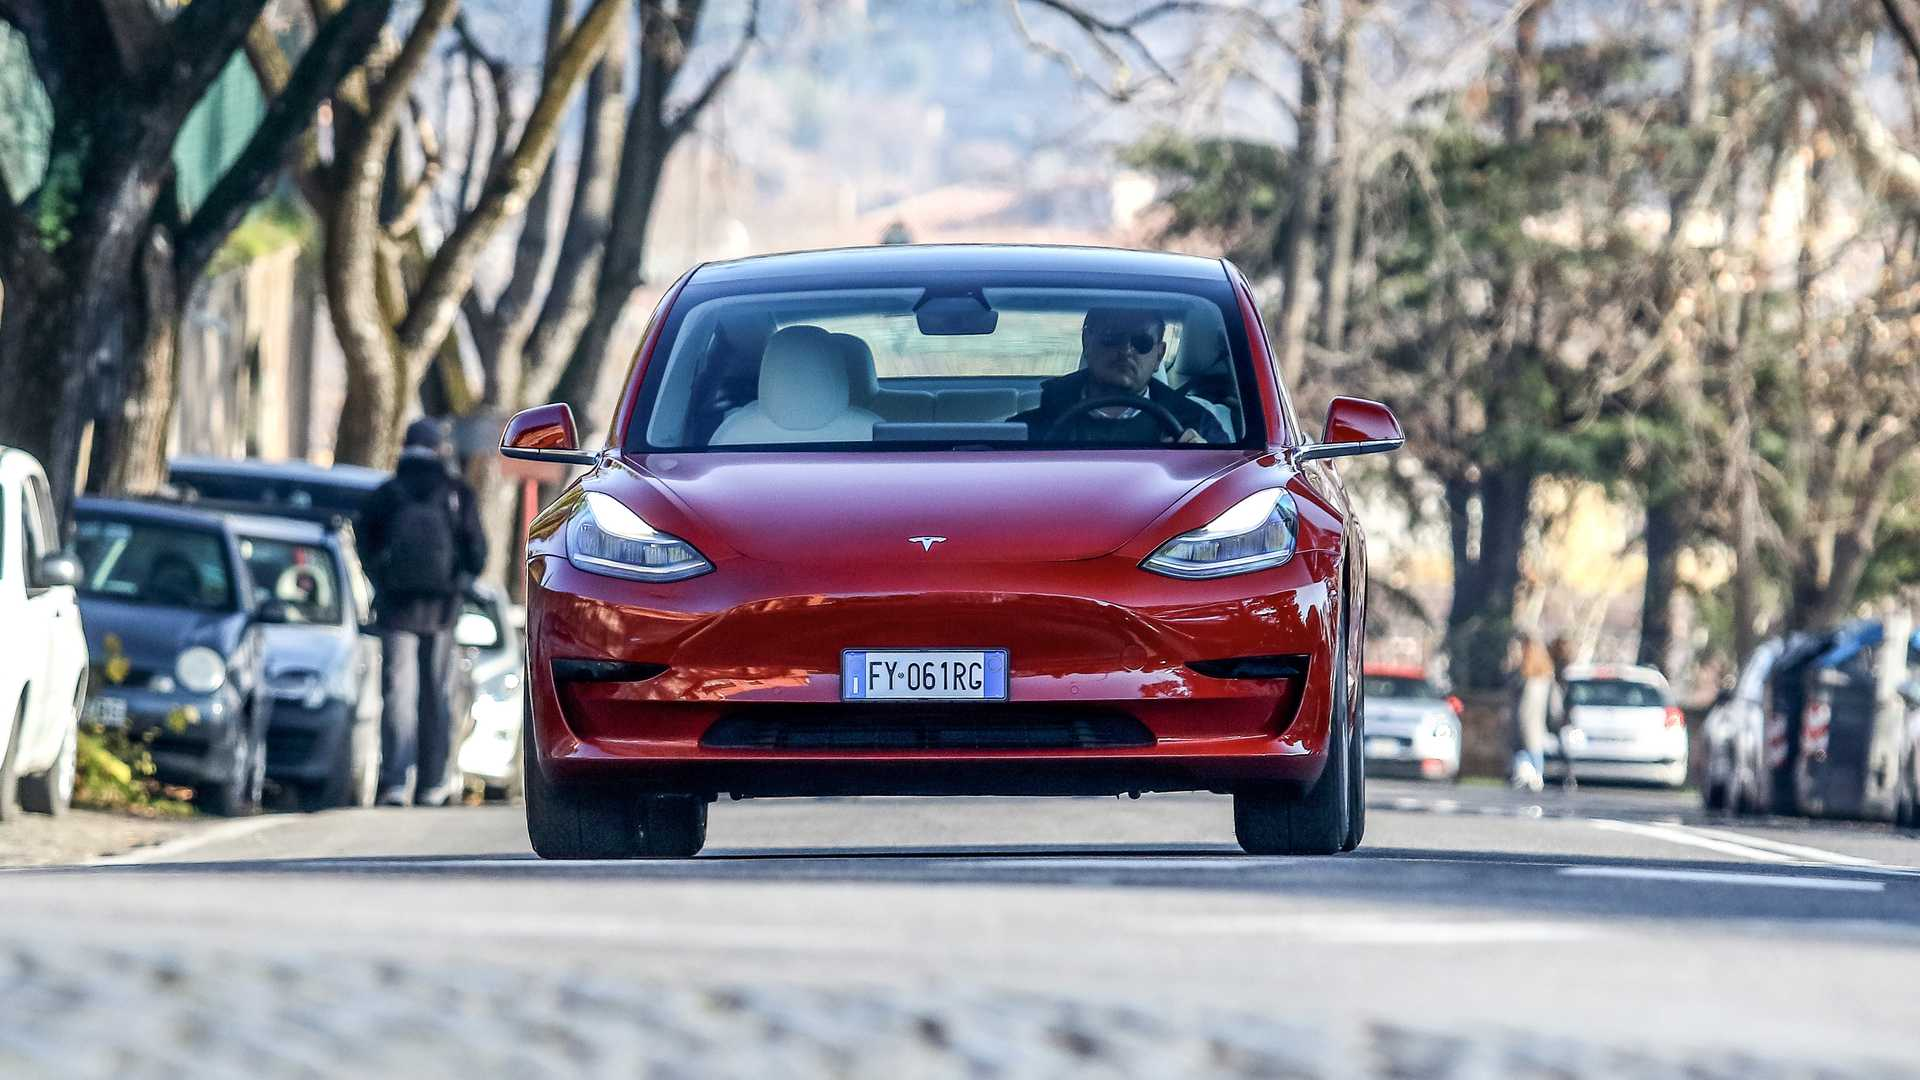 Our electric, Tesla Model 3